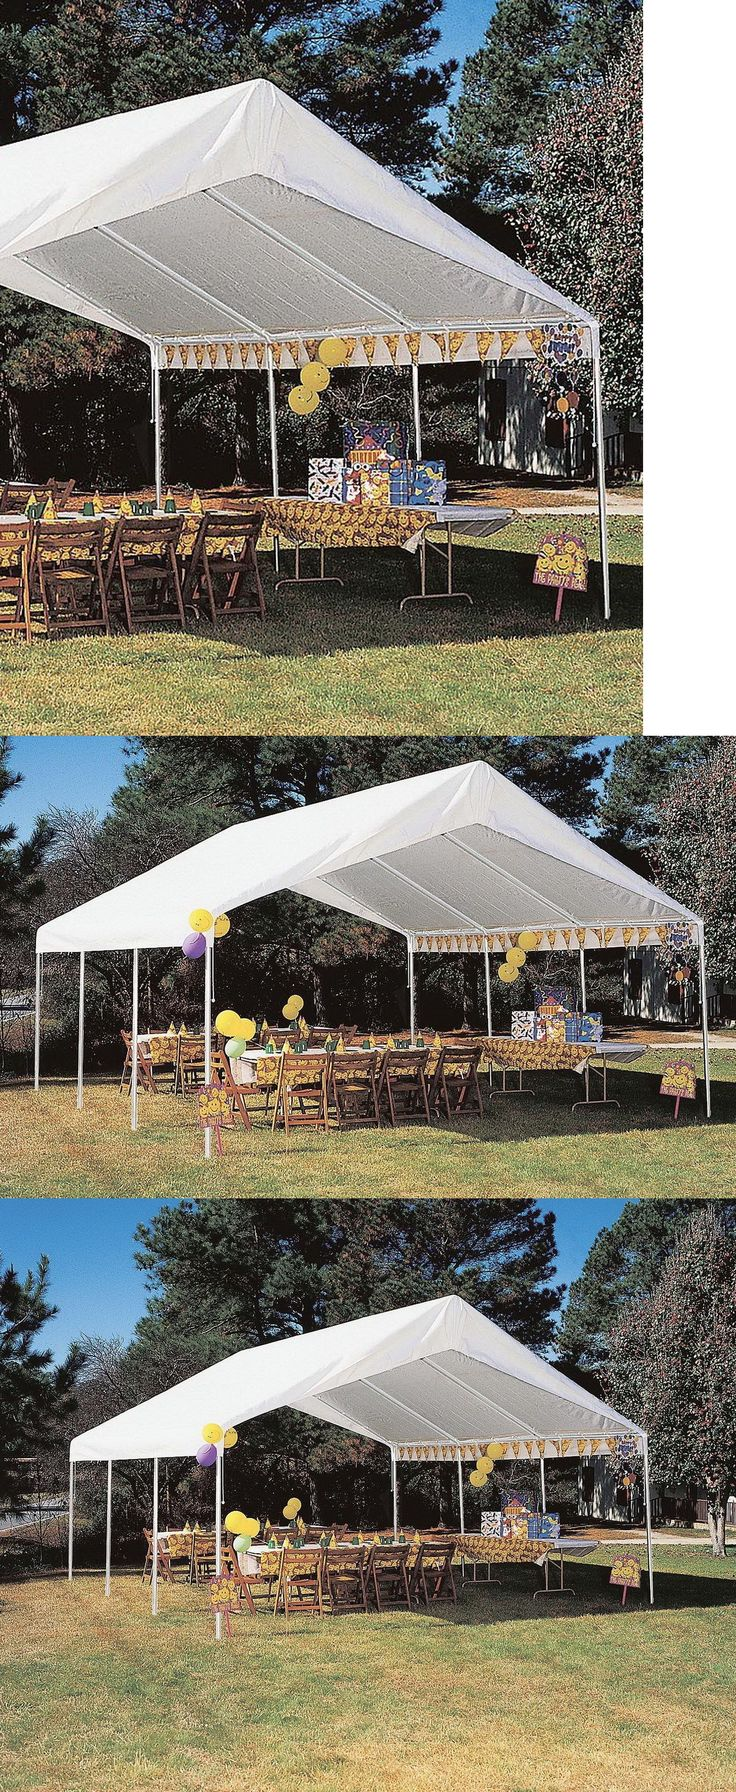 Lancaster pa prefab 2 car garage and 2 story garage manufacturer gears - Marquees And Tents 180994 New Hercules Carport Canopy Shelter 18 X 20 Portable Garage White